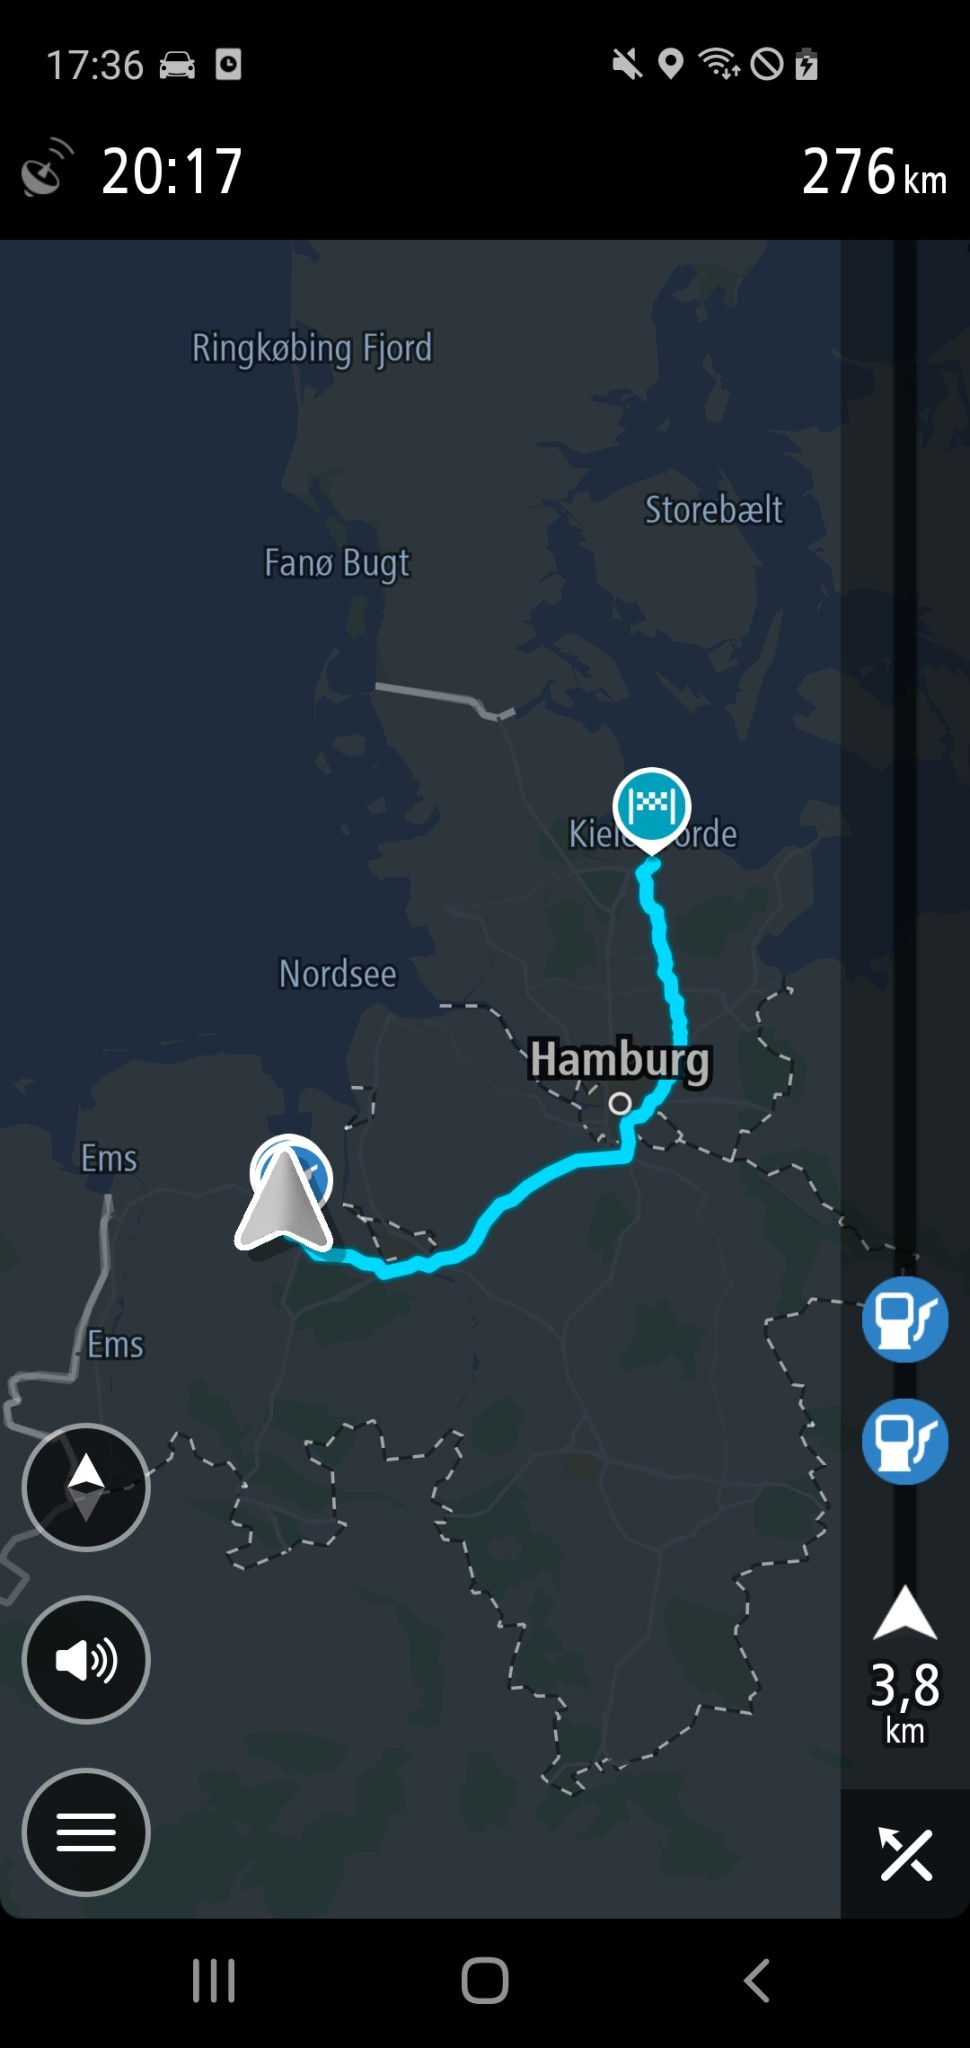 Screenshot 1 - TomTom GPS Navigation (Android-App)